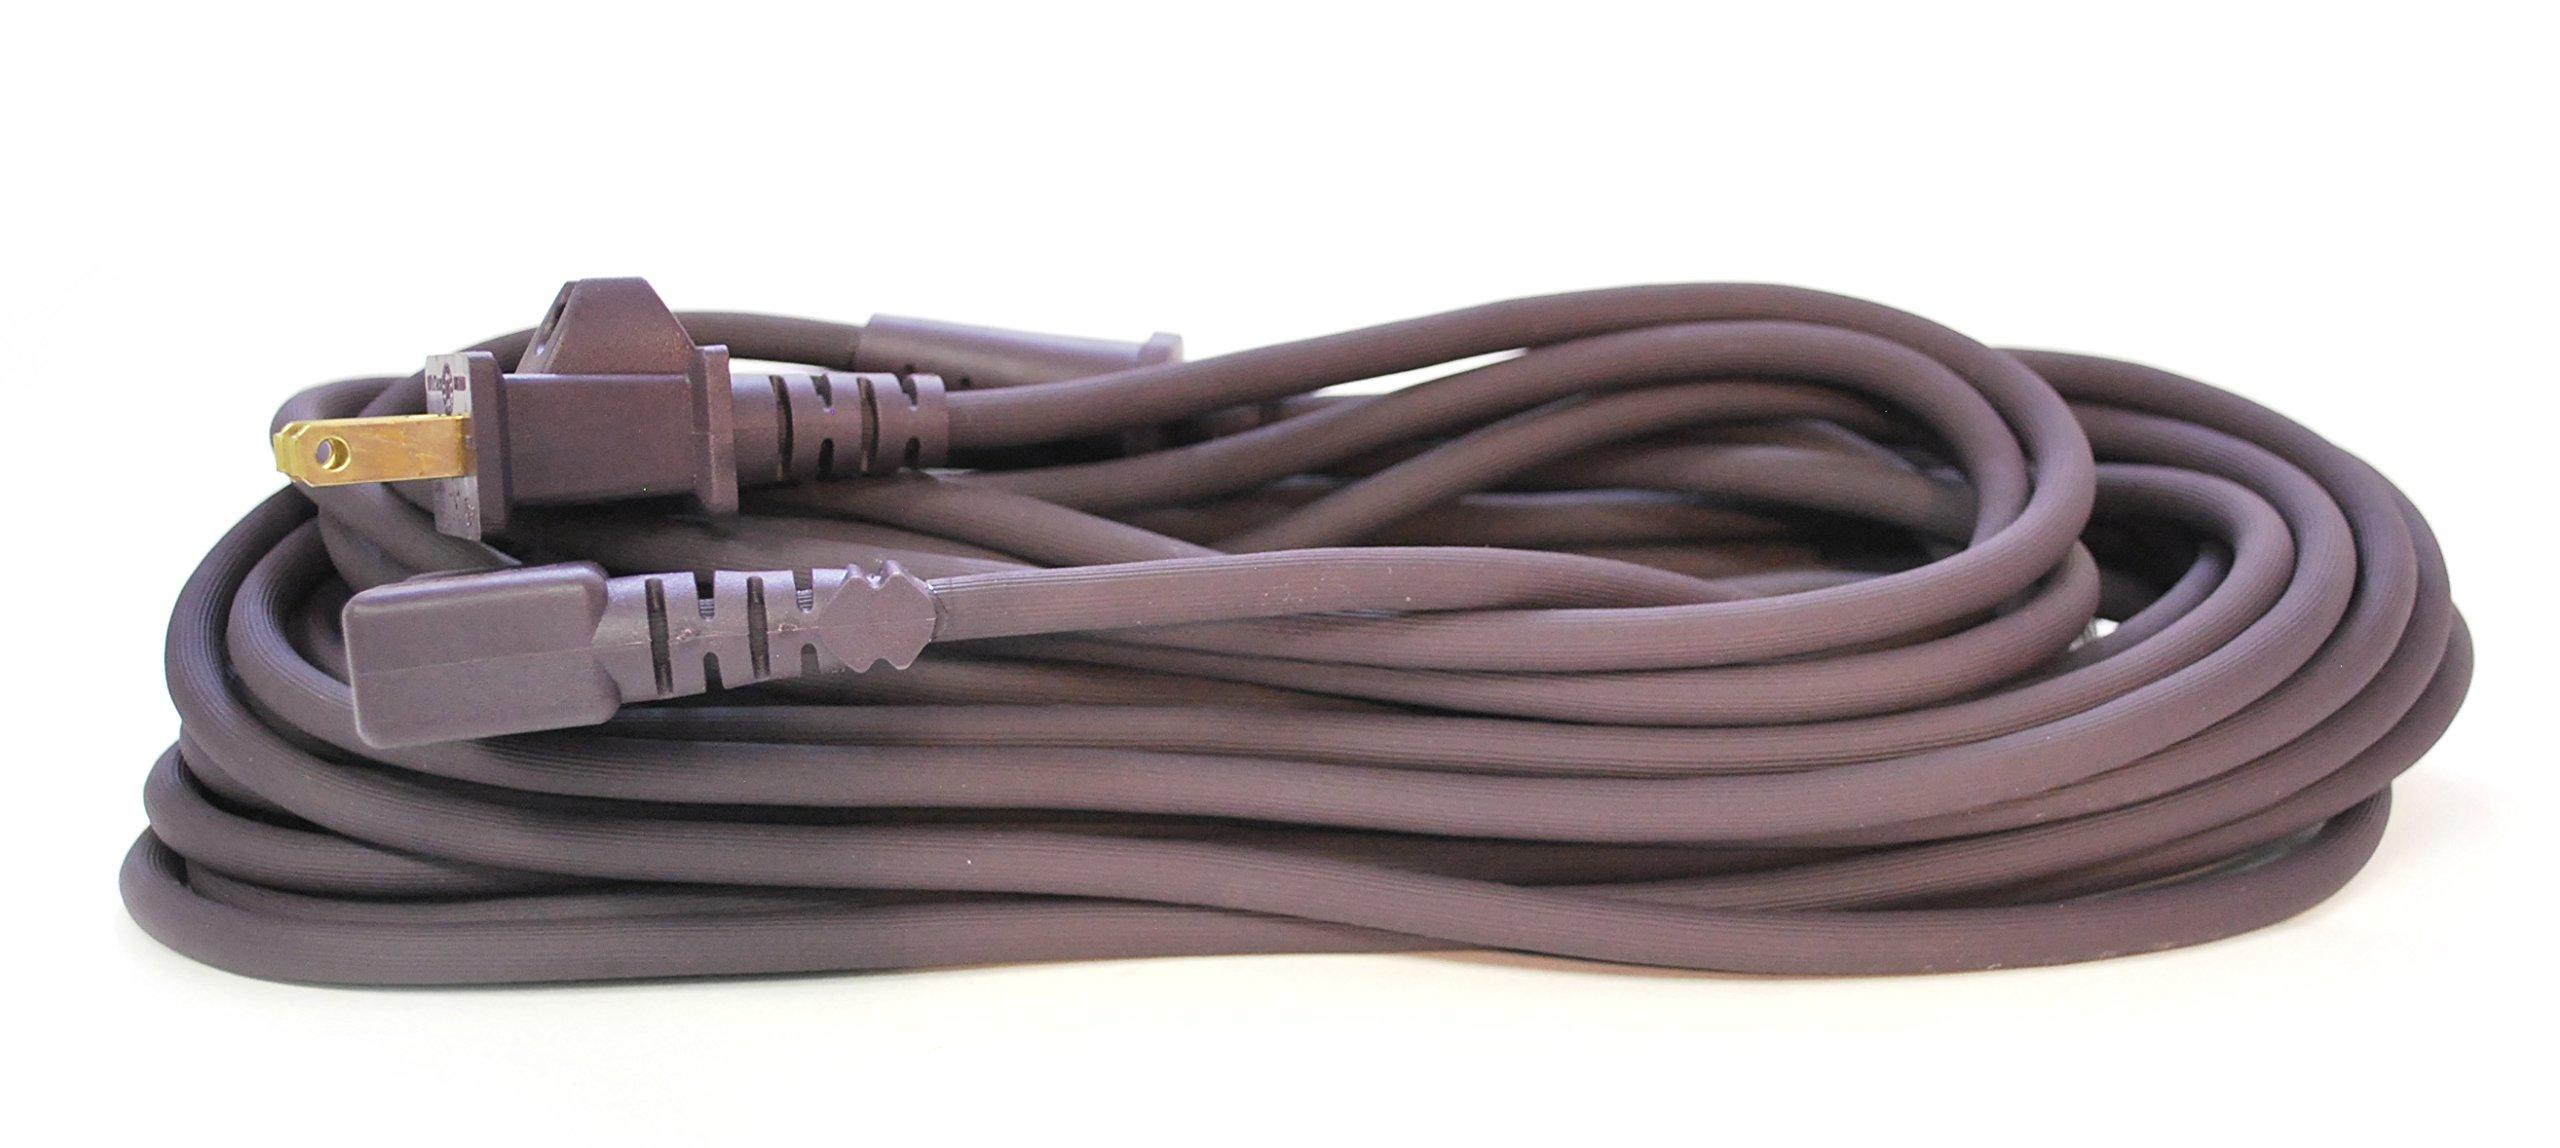 Kirby 192097 G5 Cord 32', Cabernet by Kirby